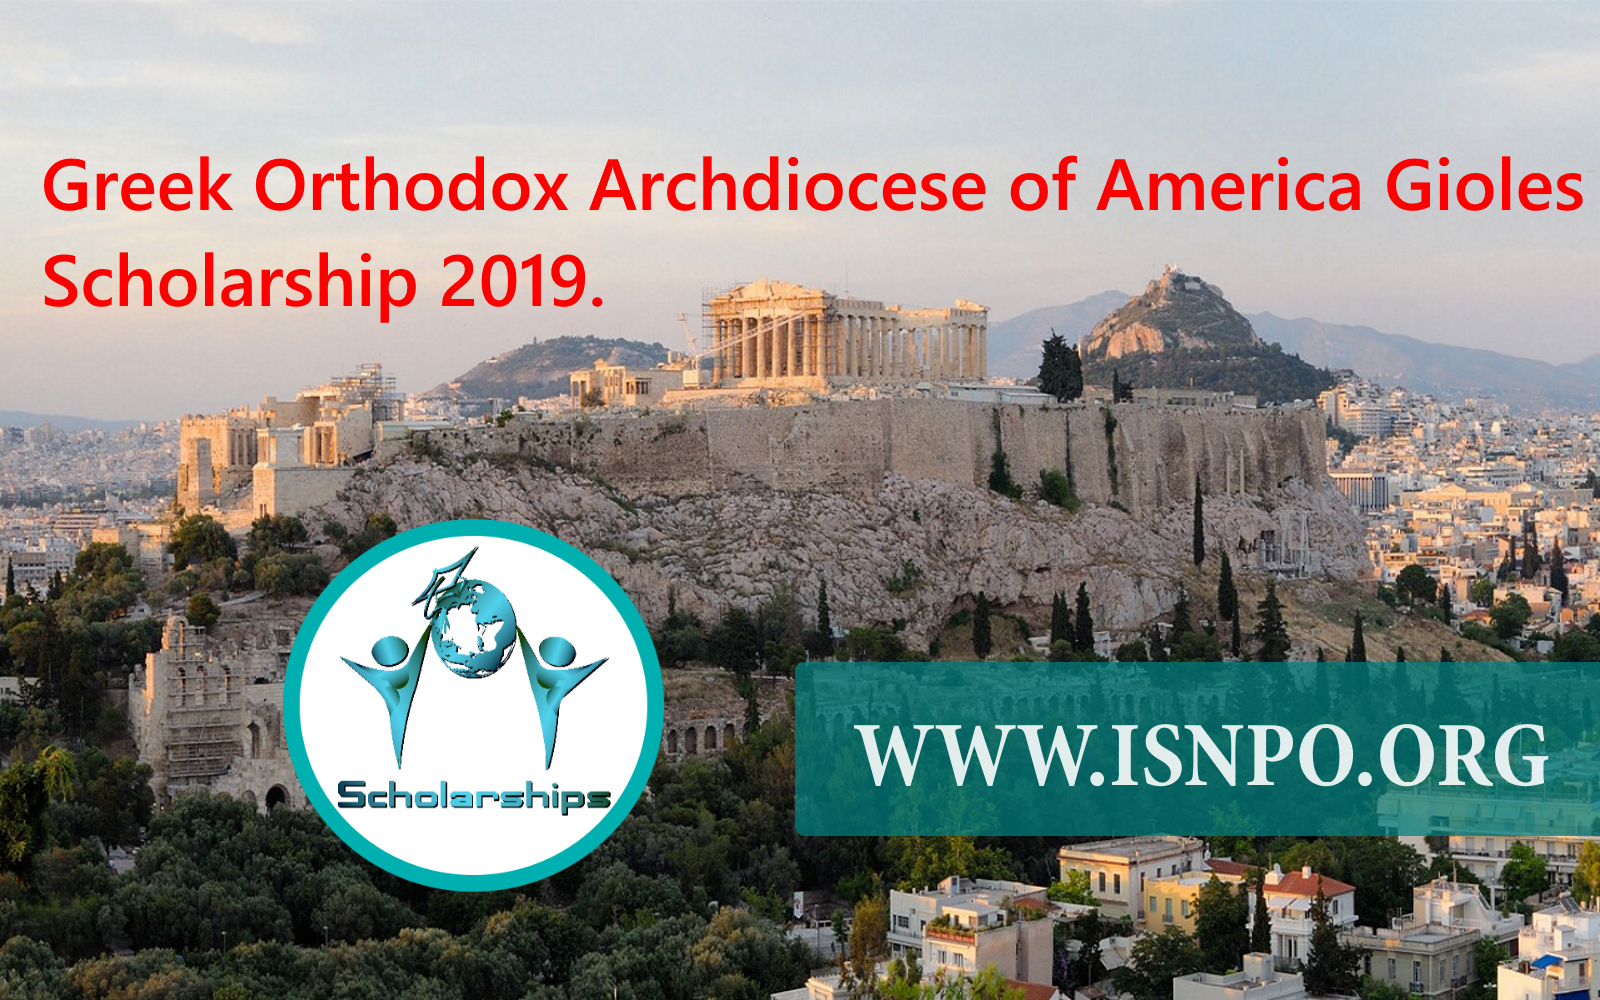 Greek Orthodox Archdiocese of America Gioles Scholarship 2019